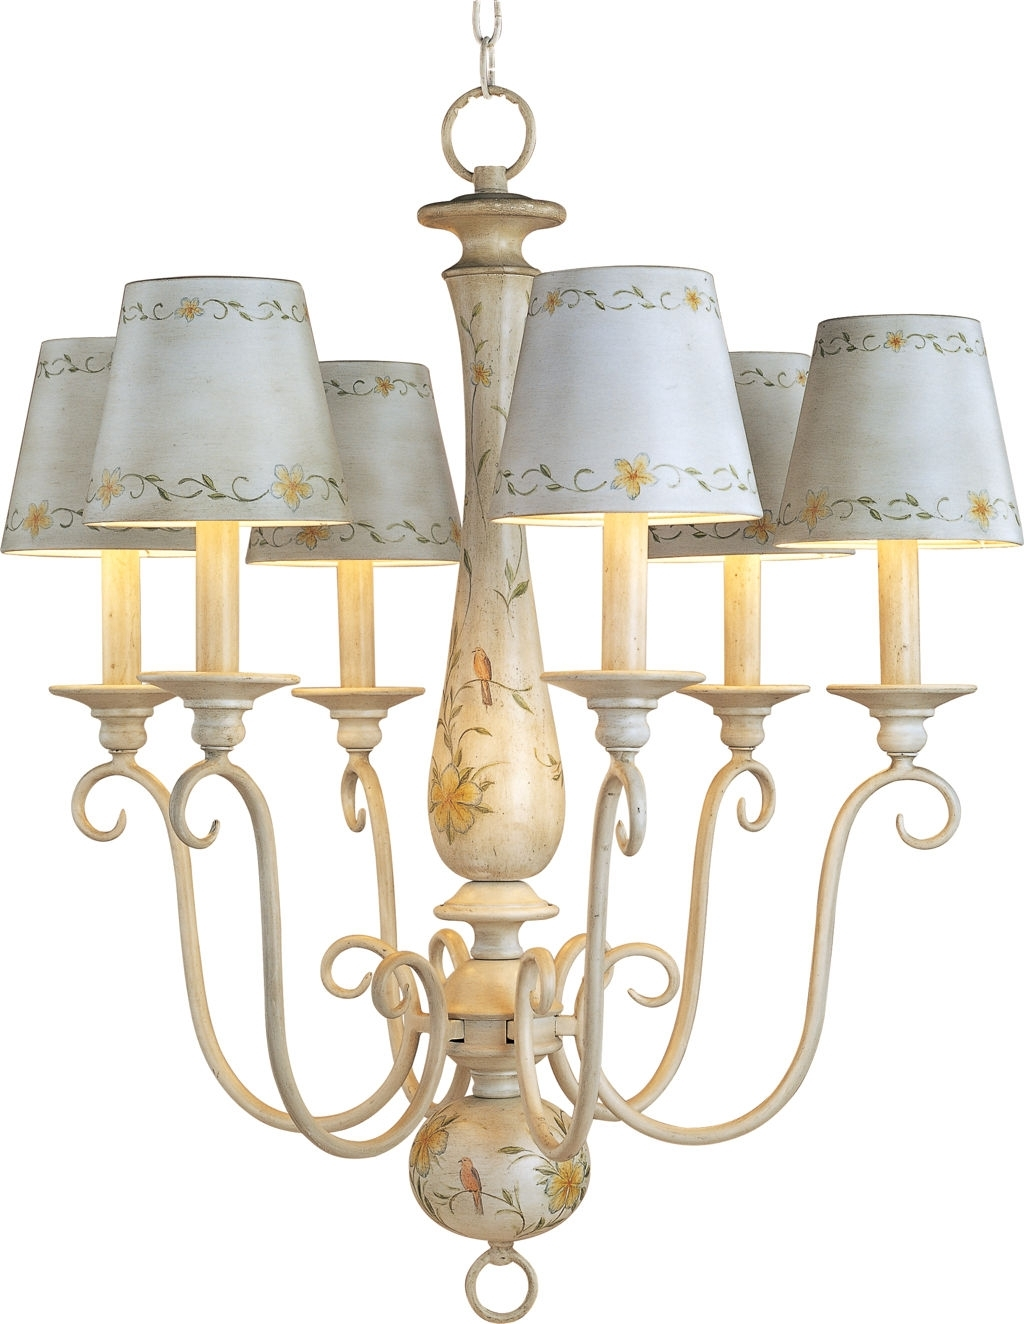 Best And Newest Clip On Drum Chandelier Shades Inside Chandelier Lamp Shades Plus 5 Inch Lamp Shades Plus Small Clip On (View 3 of 20)